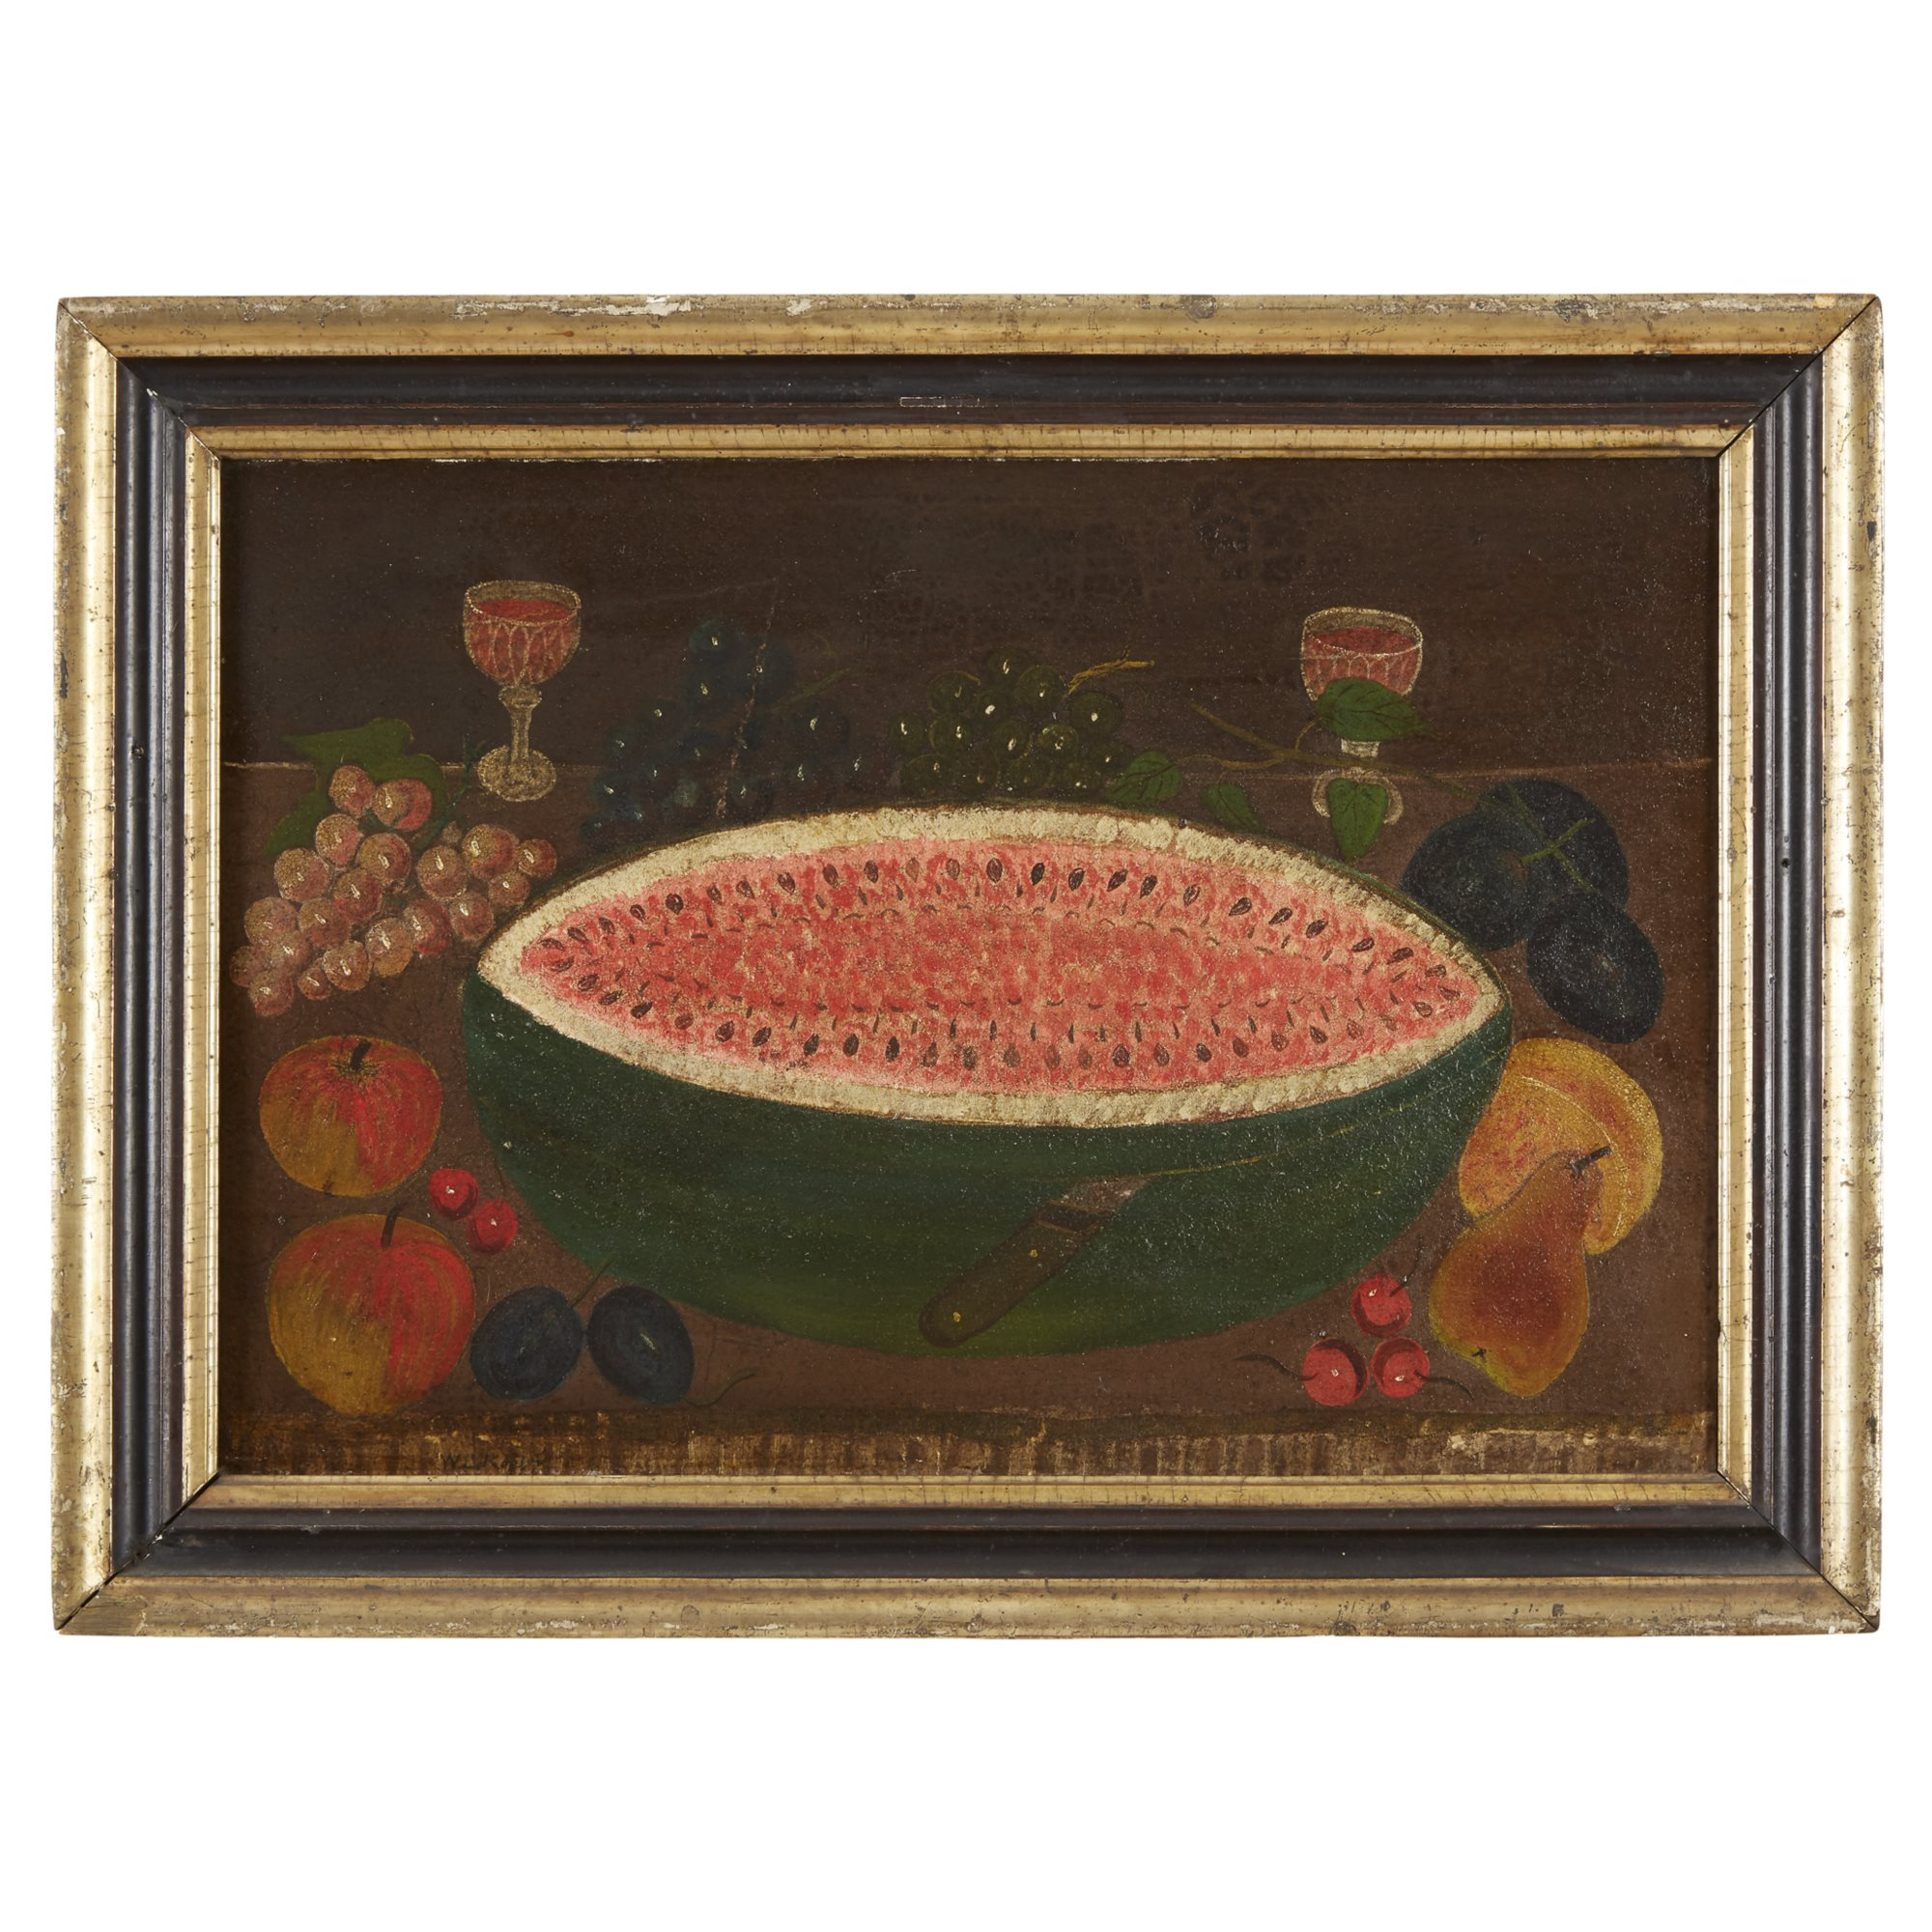 Lot 215: American School 19th century, Still Life with Watermelon, Dated 1887, Oil on canvas, $2,000-3,000, to be offered at Freeman's on 04/30/19